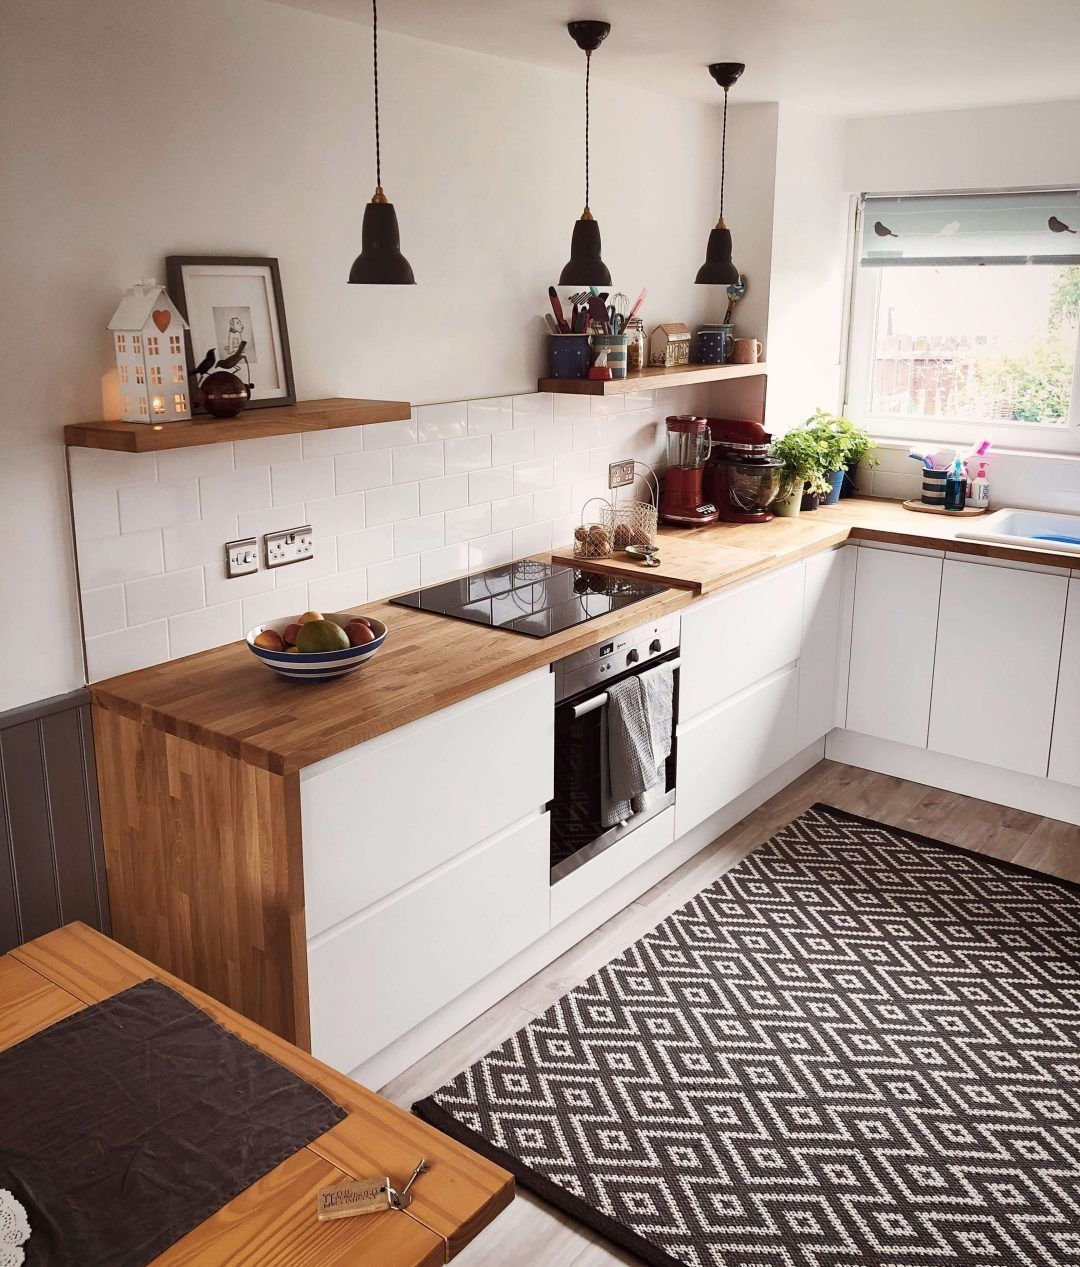 25 Eclectic Scandinavian Kitchen Designs (Let's Bring The Charm!) - 95528Bc23E036B2Afeeafd1D8A32484C